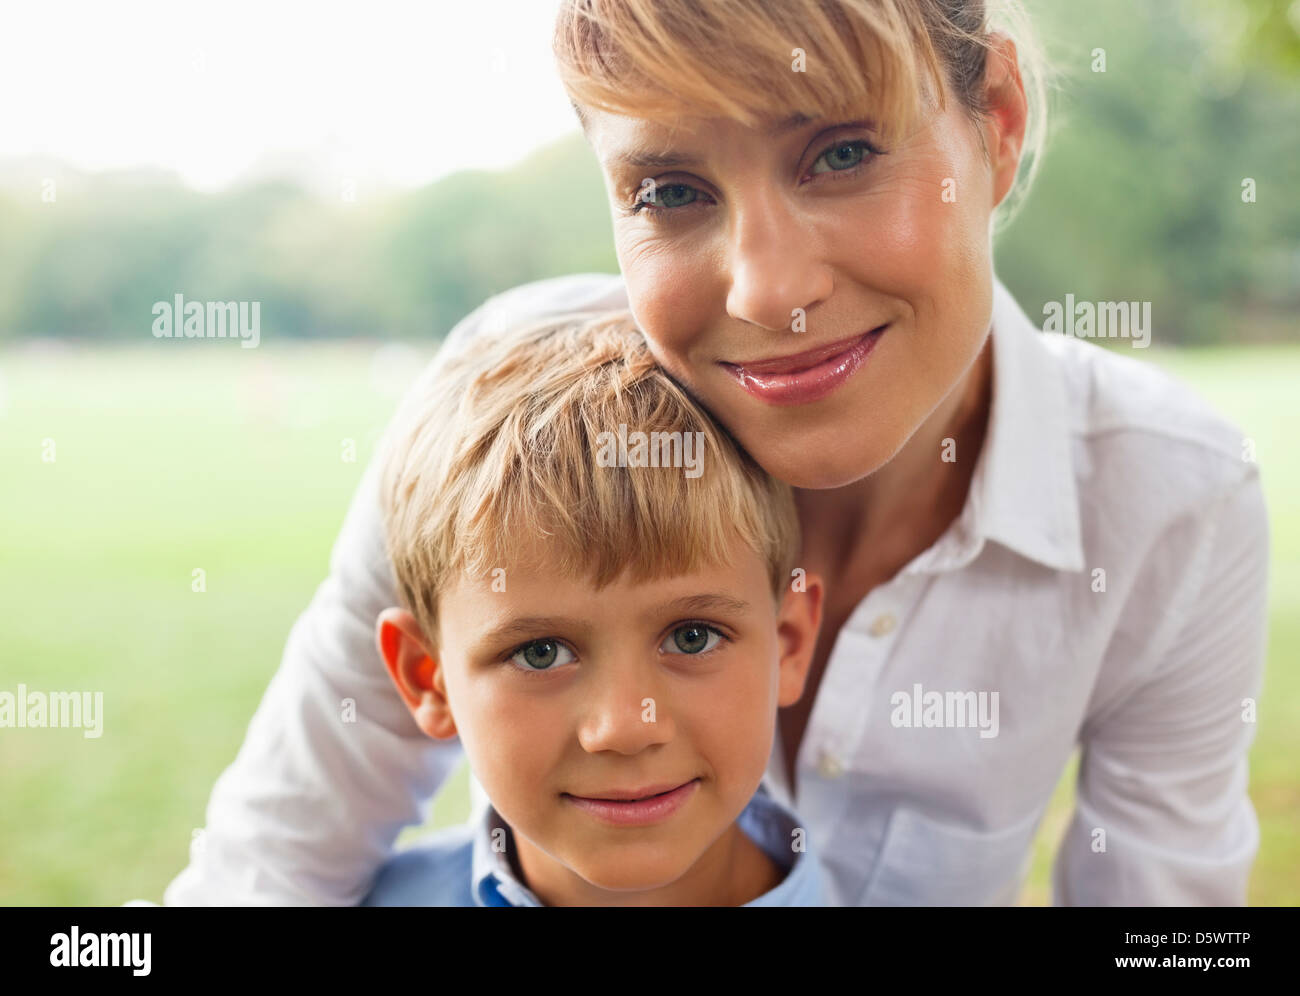 Smiling mother hugging son outdoors - Stock Image